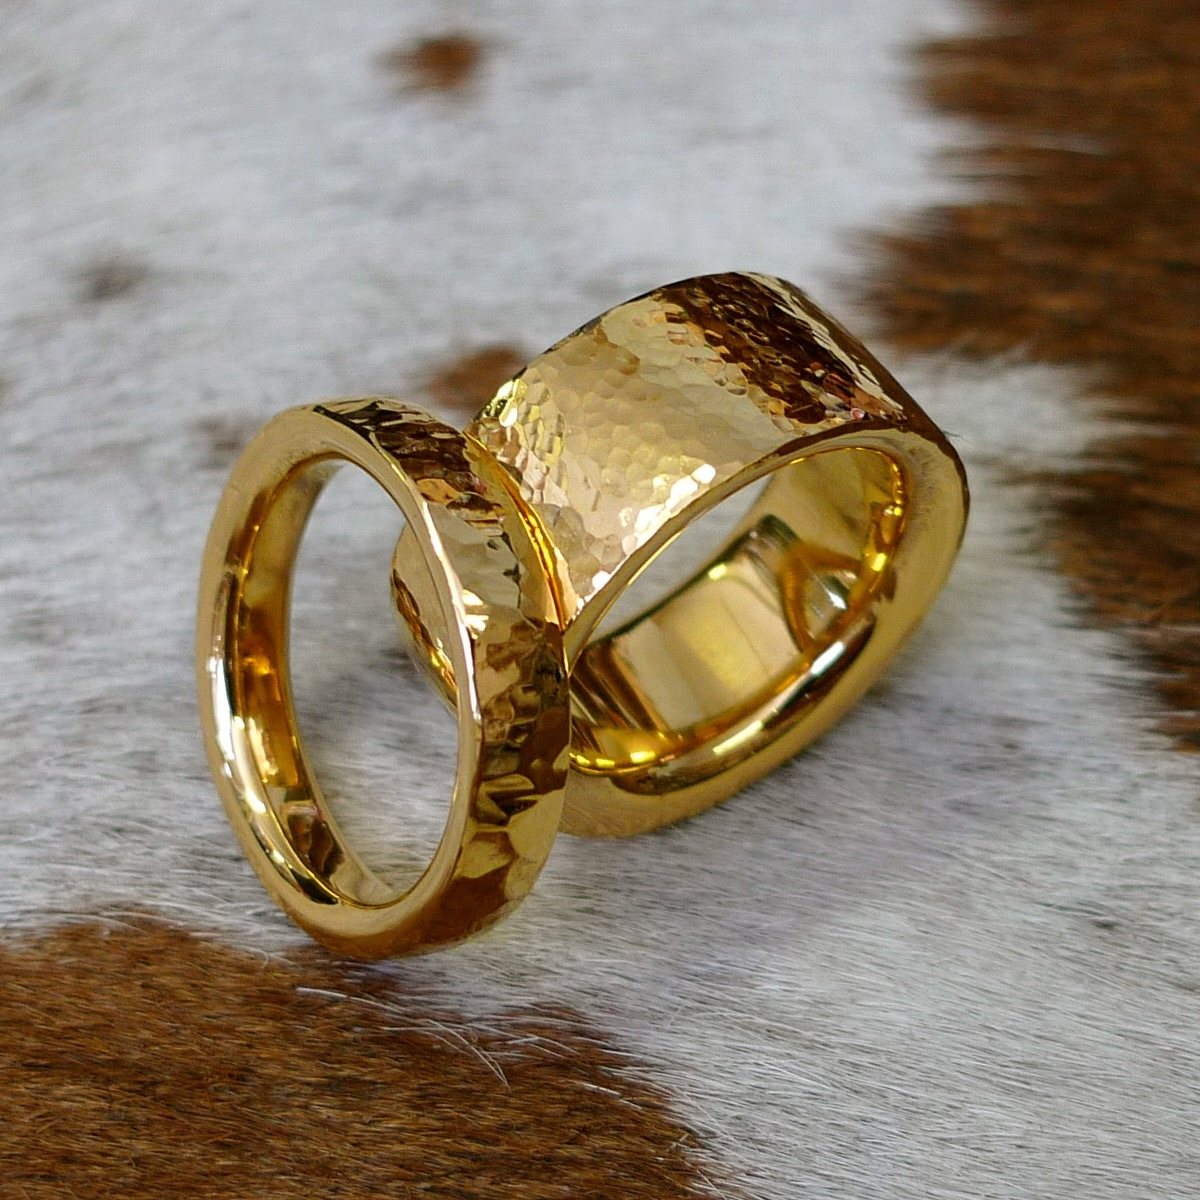 Hand made gold hammered unisex wedding rings